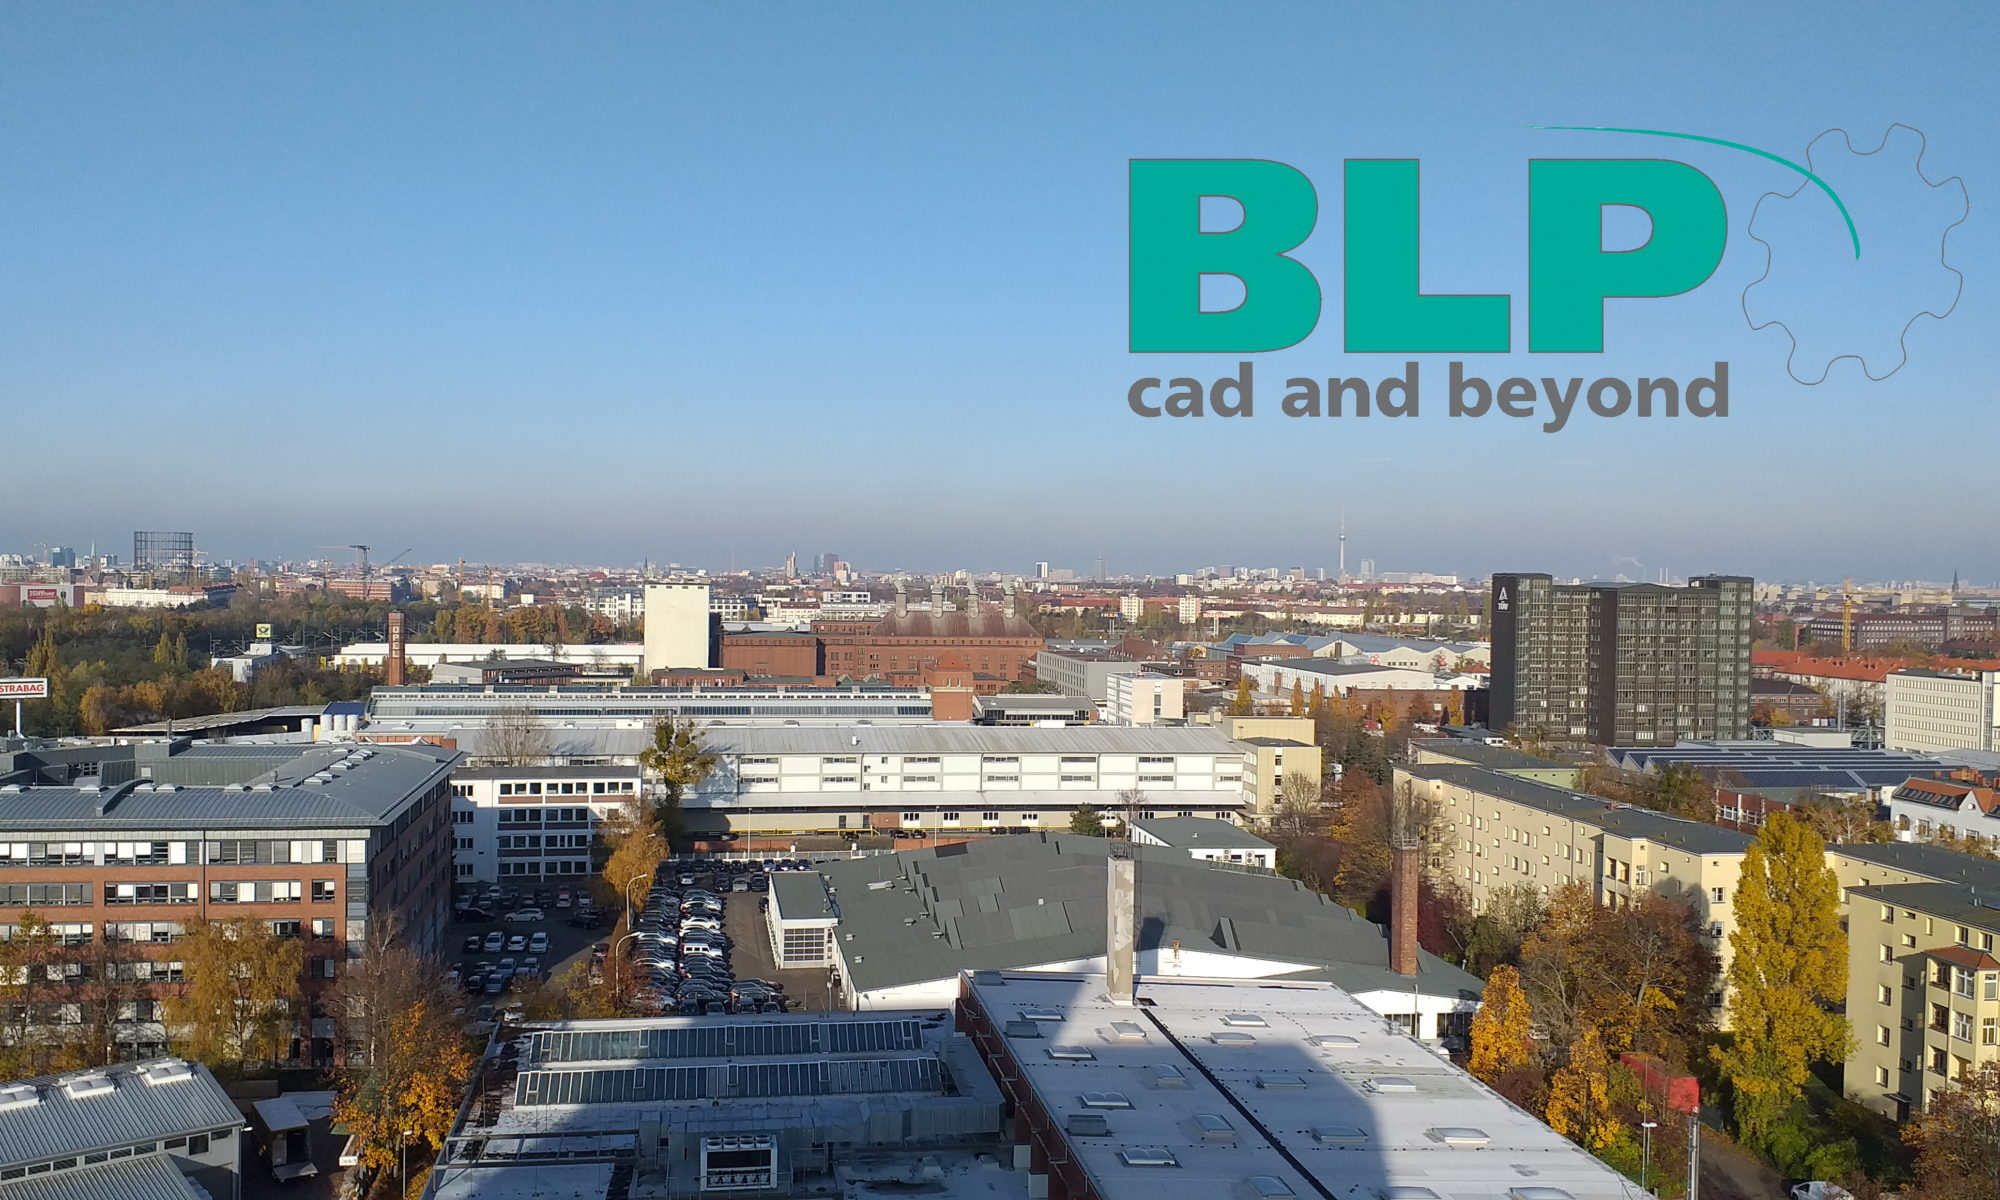 BLP cad and beyond